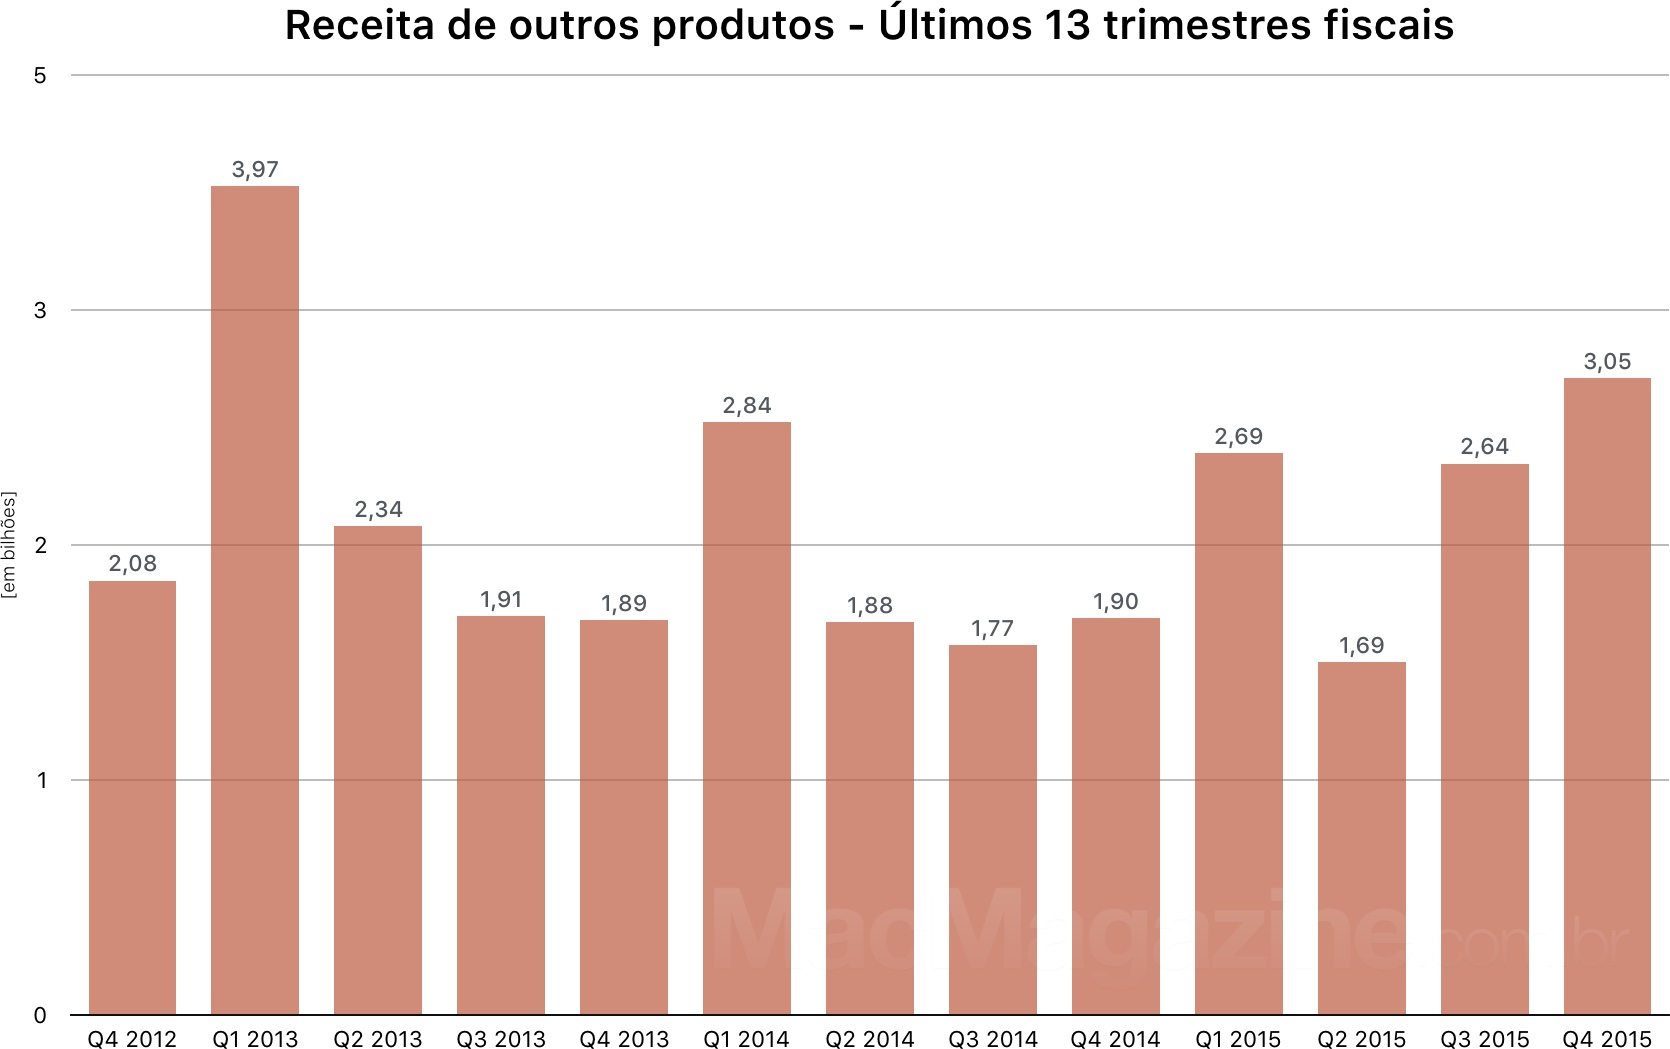 Gráfico do 4º trimestre fiscal da Apple